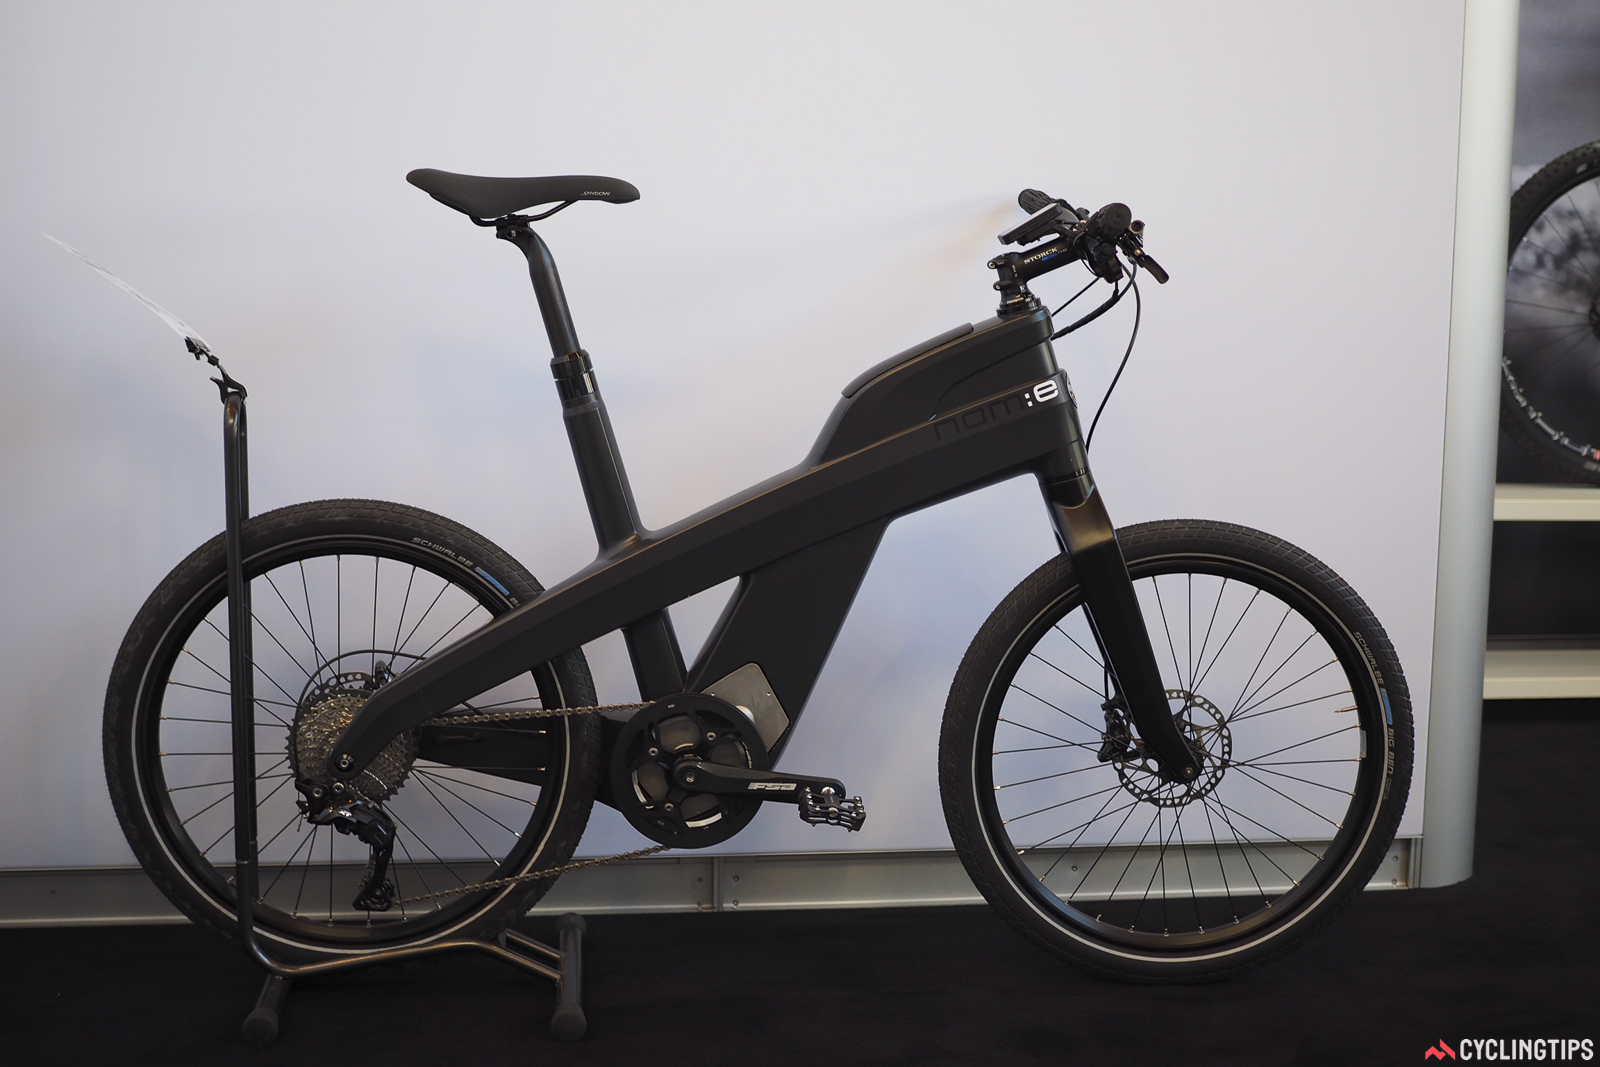 Storck has entered into a government funded study aimed at bringing carbon bicycle manufacturing back to the EU. Along with manufacturing partner Rehau AG and the Dresden University of Technology. This 24in-wheeled urban e-bike is the first fruit of the group's labors, but more is definitely pending. Photo: James Huang.